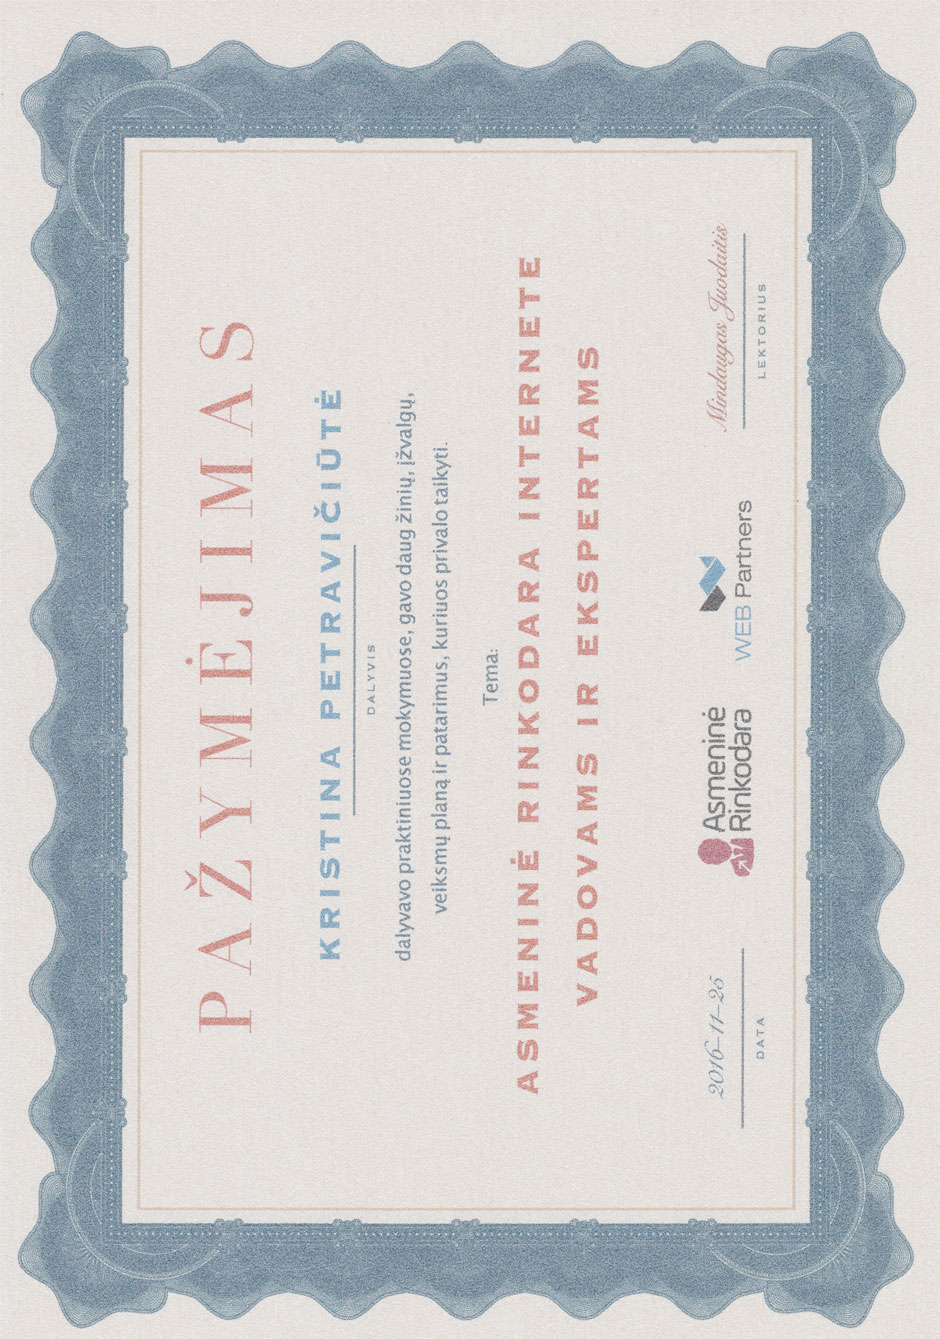 Kristina Petraviciute - Personal digital marketing certificate 2016